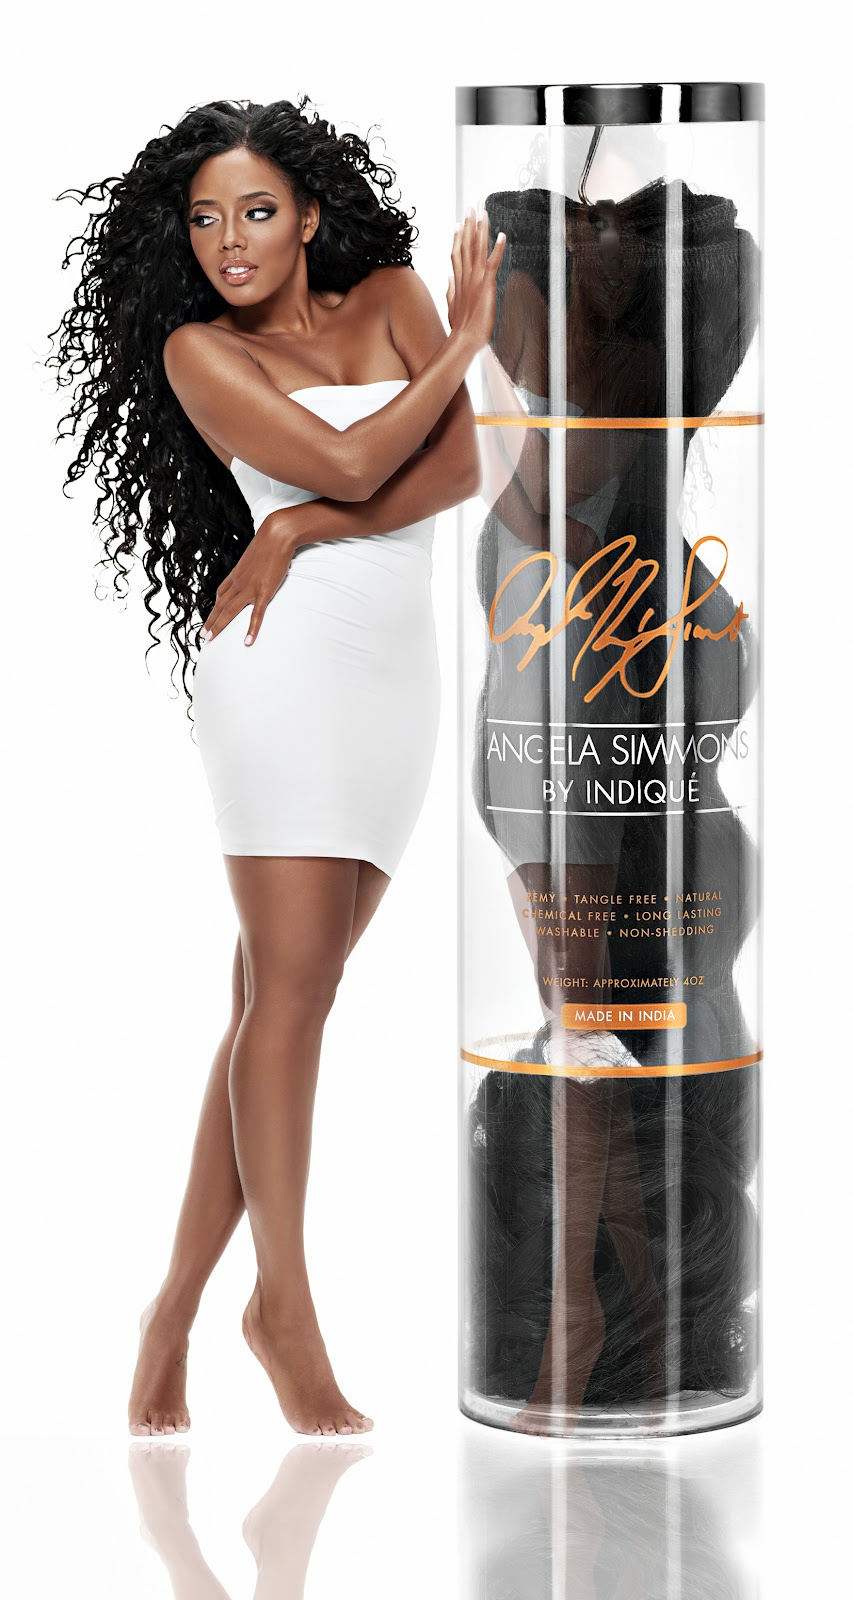 Indiqu Hair Teams Up With Fashion Maven Angela Simmons To Launch